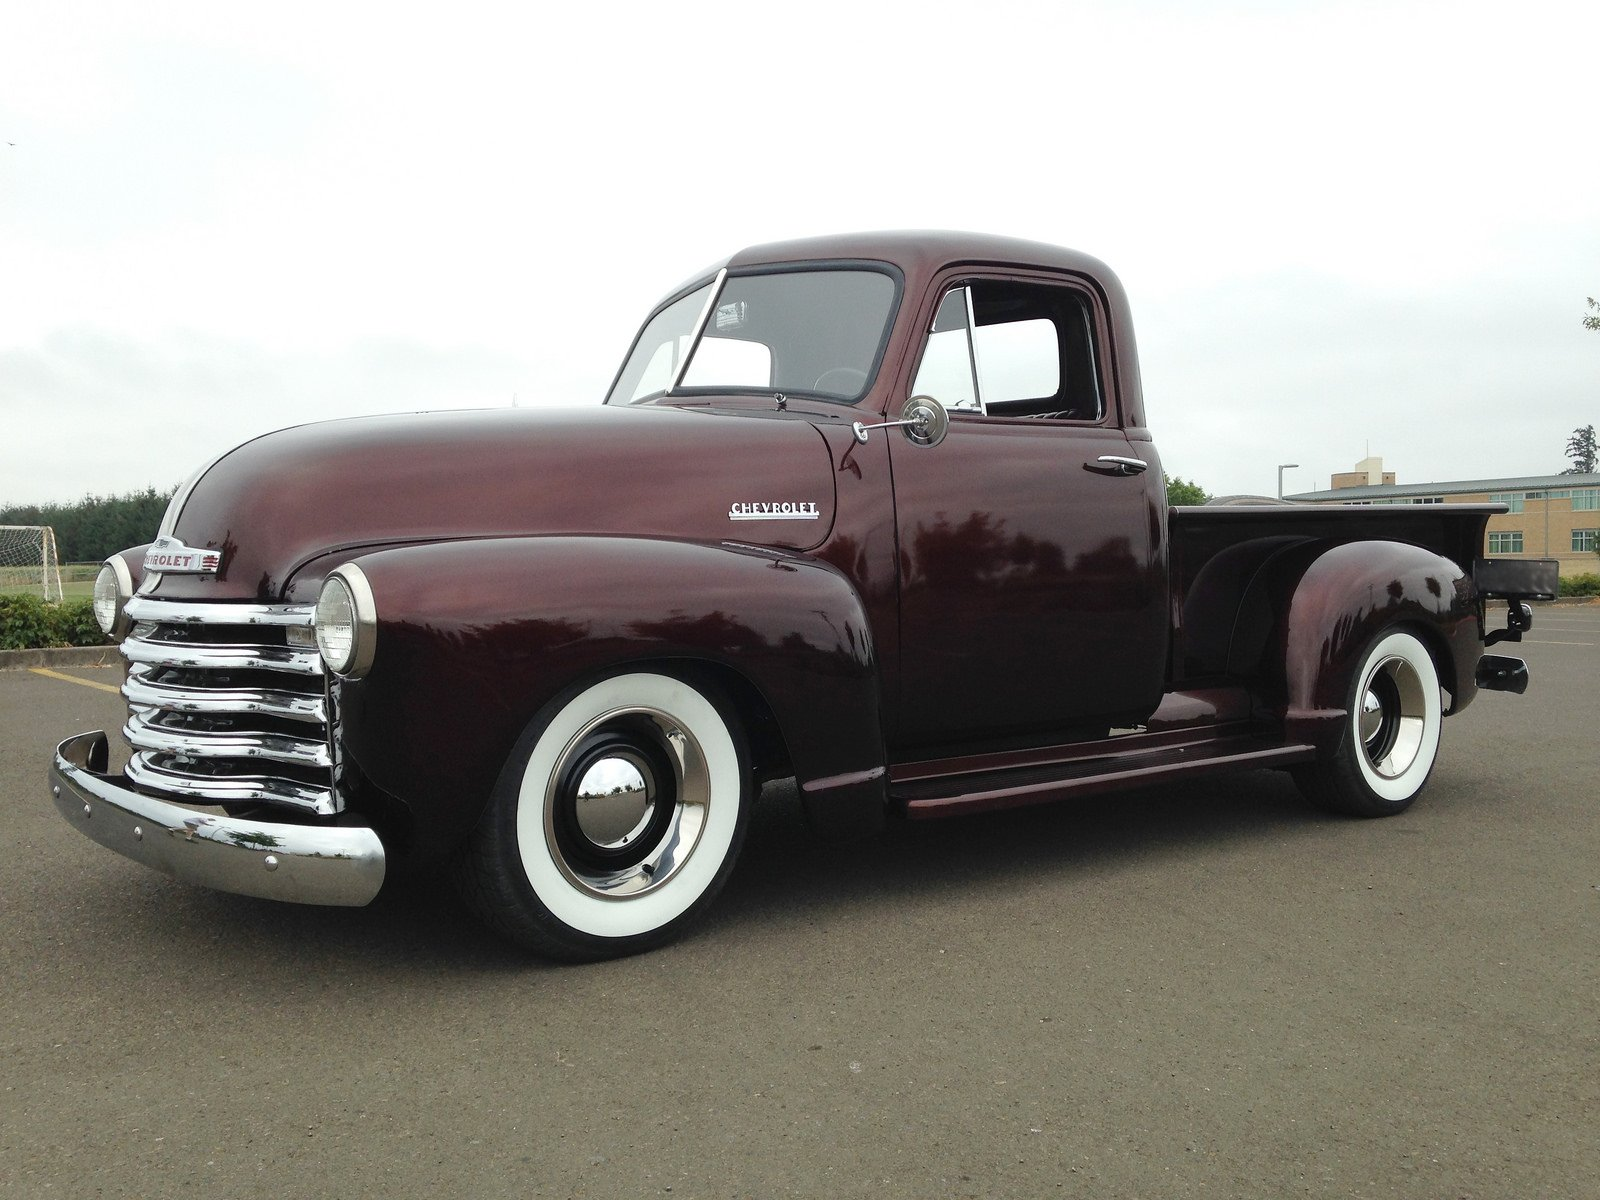 chevrolet chevy old classic custom cars truck pickup wallpaper 1600x1200 678451 wallpaperup. Black Bedroom Furniture Sets. Home Design Ideas